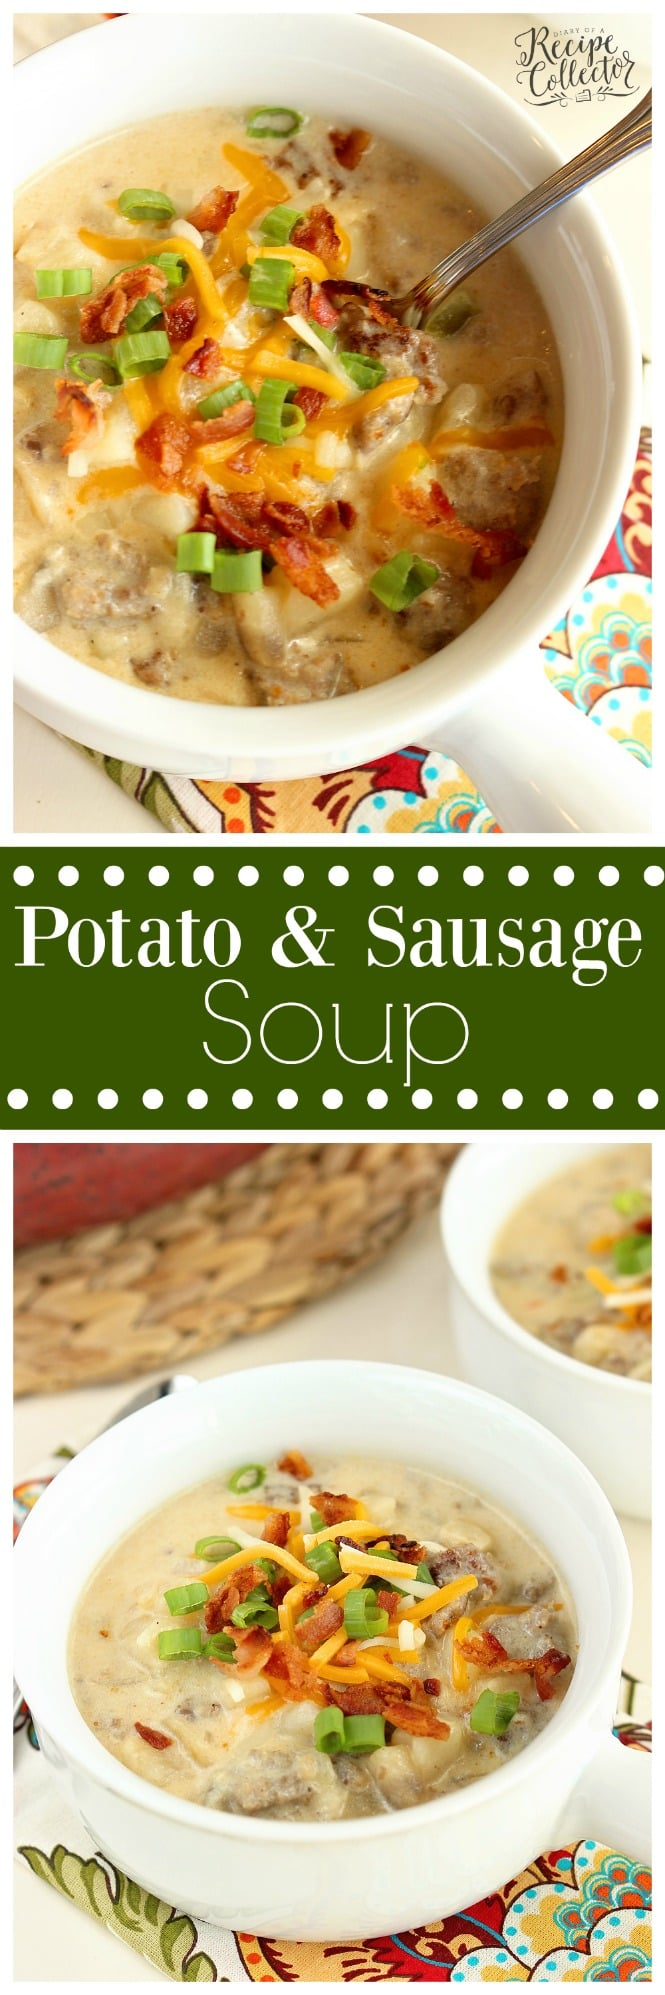 Paula Deen Baked Potato Soup